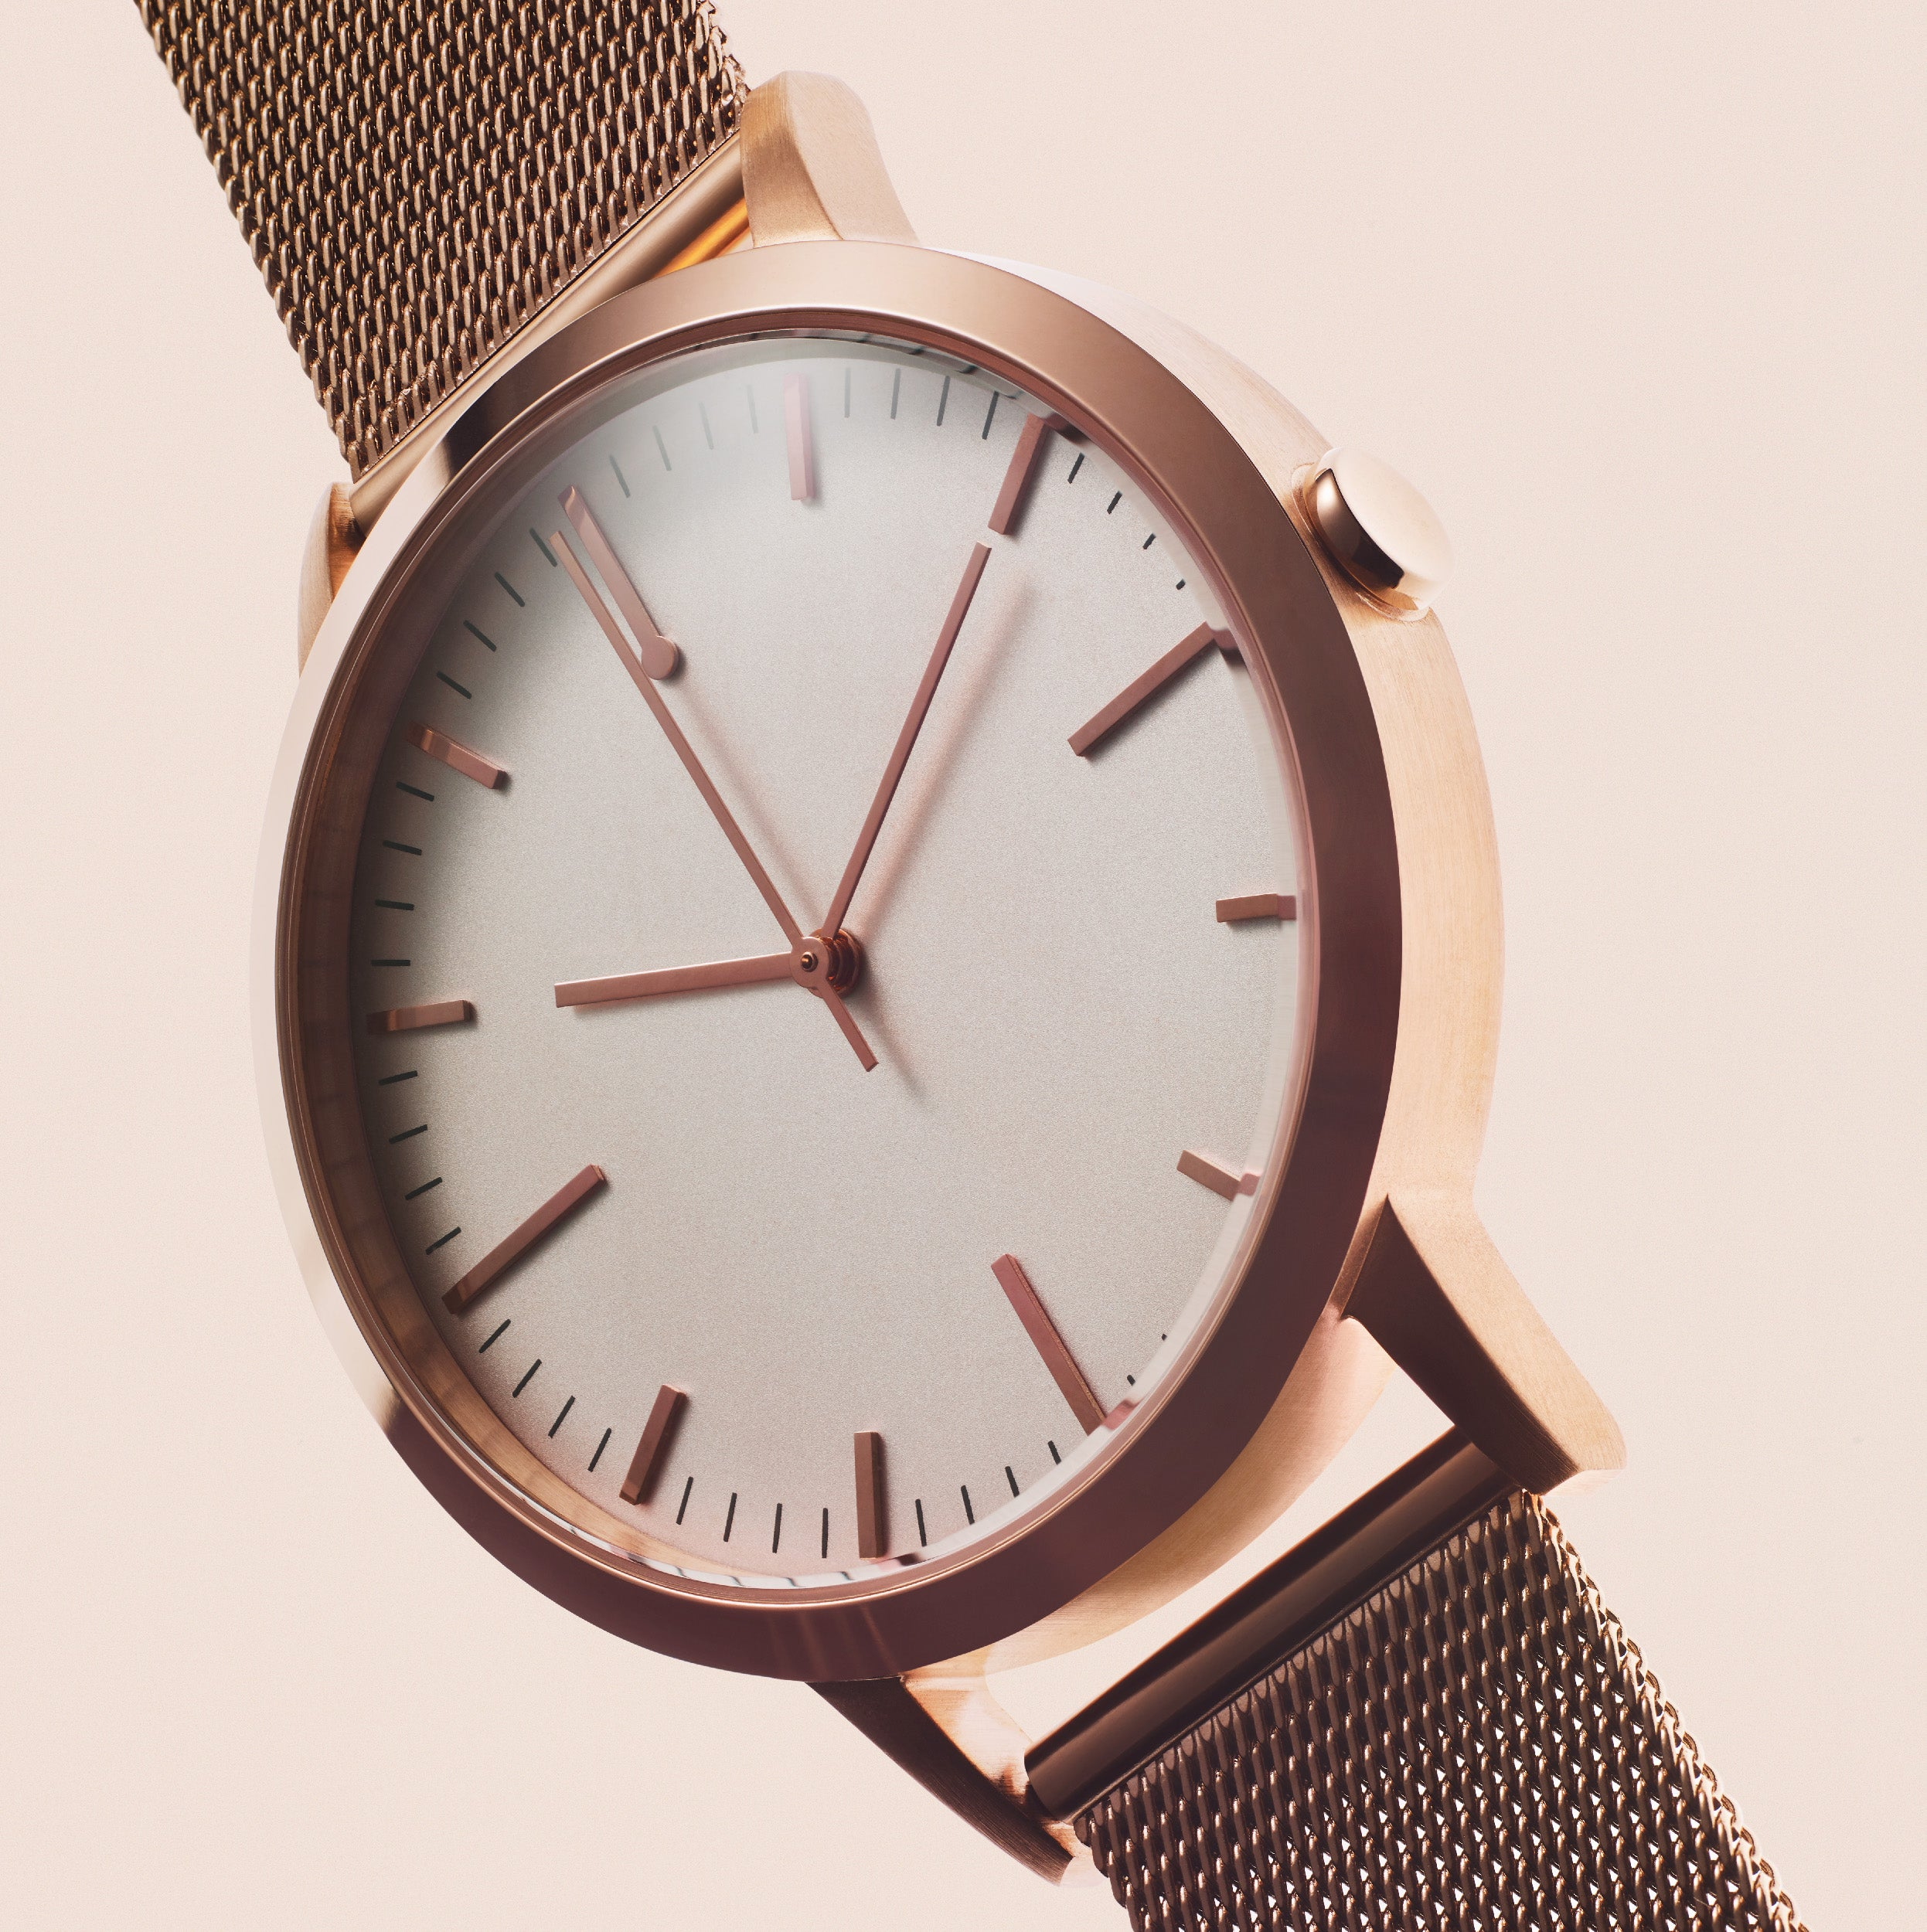 Mens Watch Mesh Strap - Simple Design - Rose Gold Mesh - UK - Under £100 - Freedom To Exist - Minimal Watches British Design